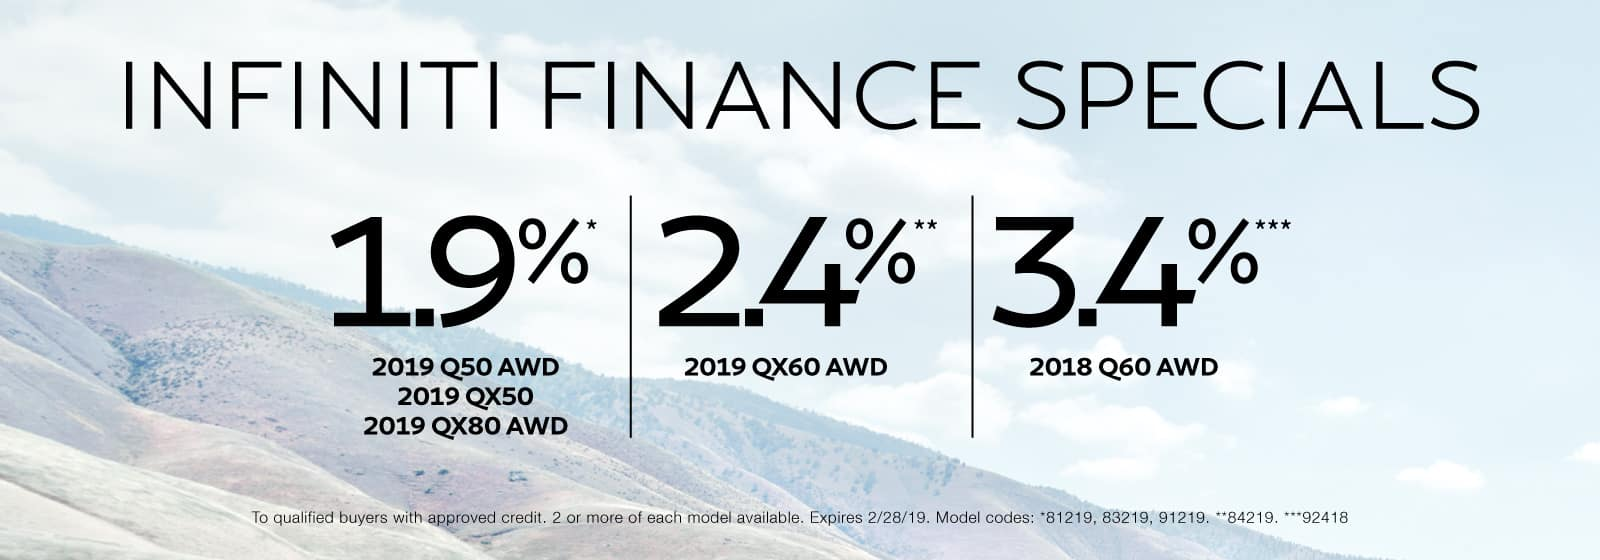 Finance Specials at Berman INFINITI Merrillville